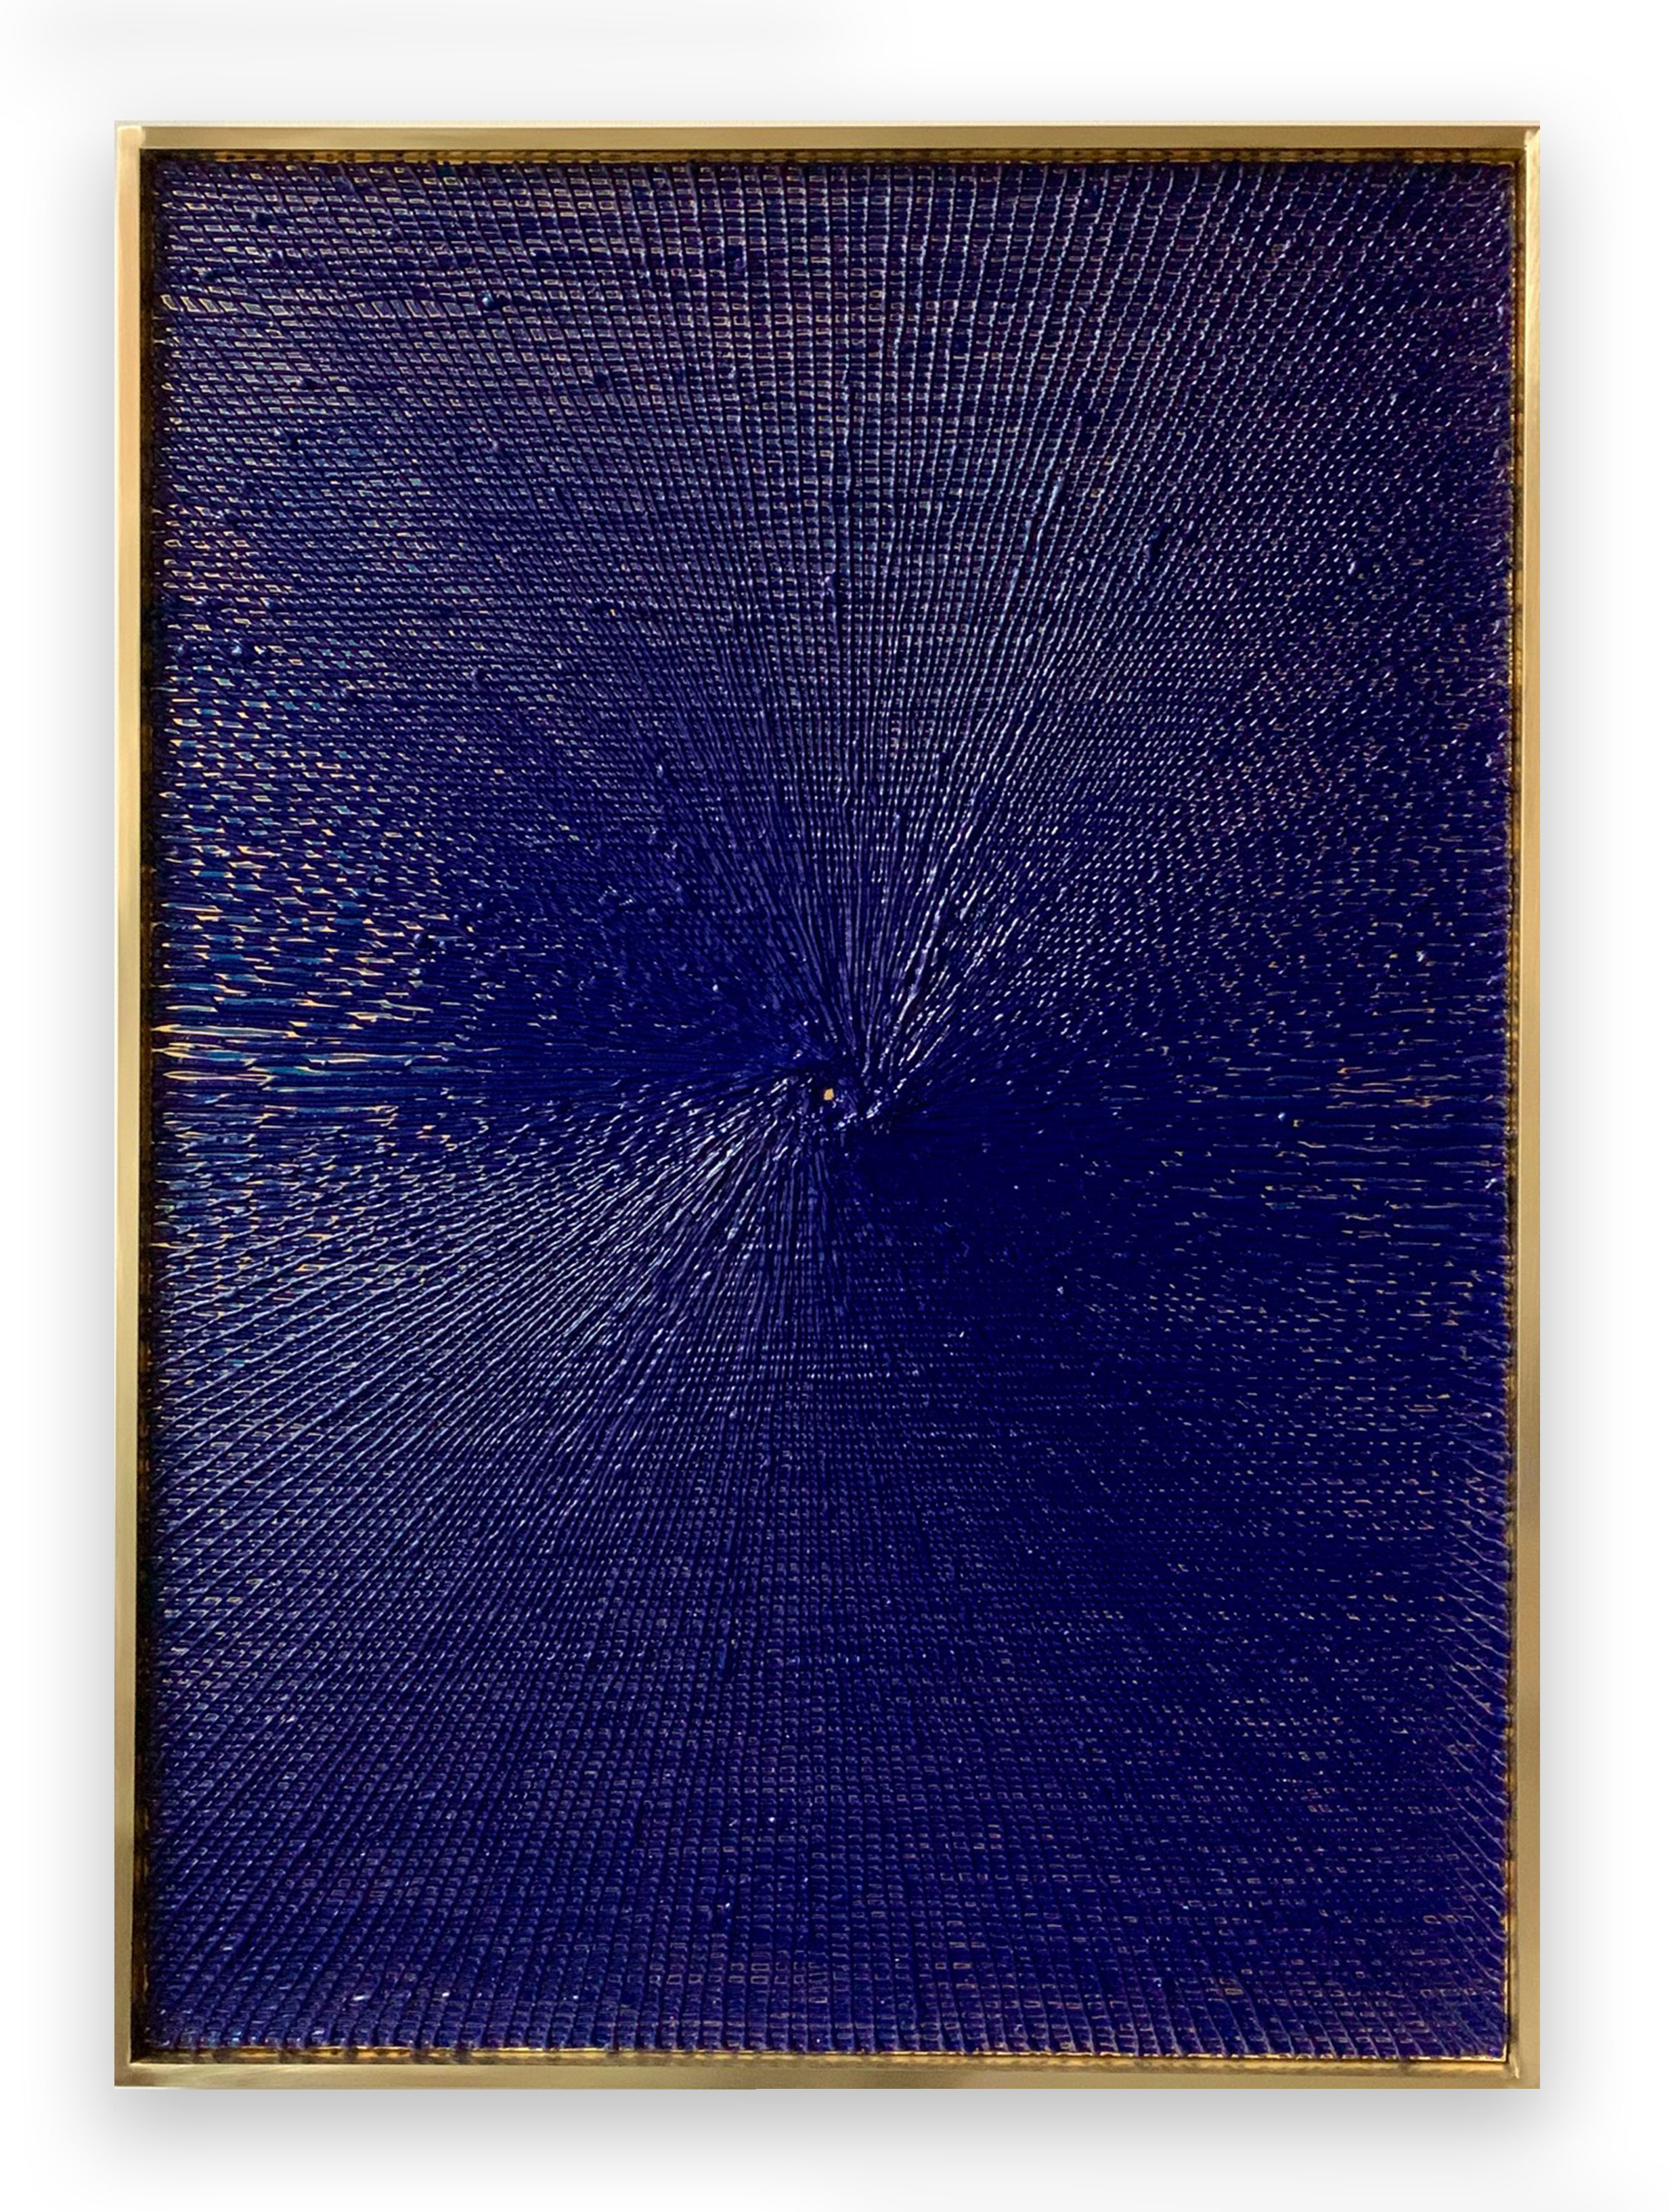 2019 Oil on 24k gold leaf laid on canvas in brass frame 44 x 32 x 2.5 inches (111.8 x 81.3 x 6.4 cm) - Marc Straus Gallery